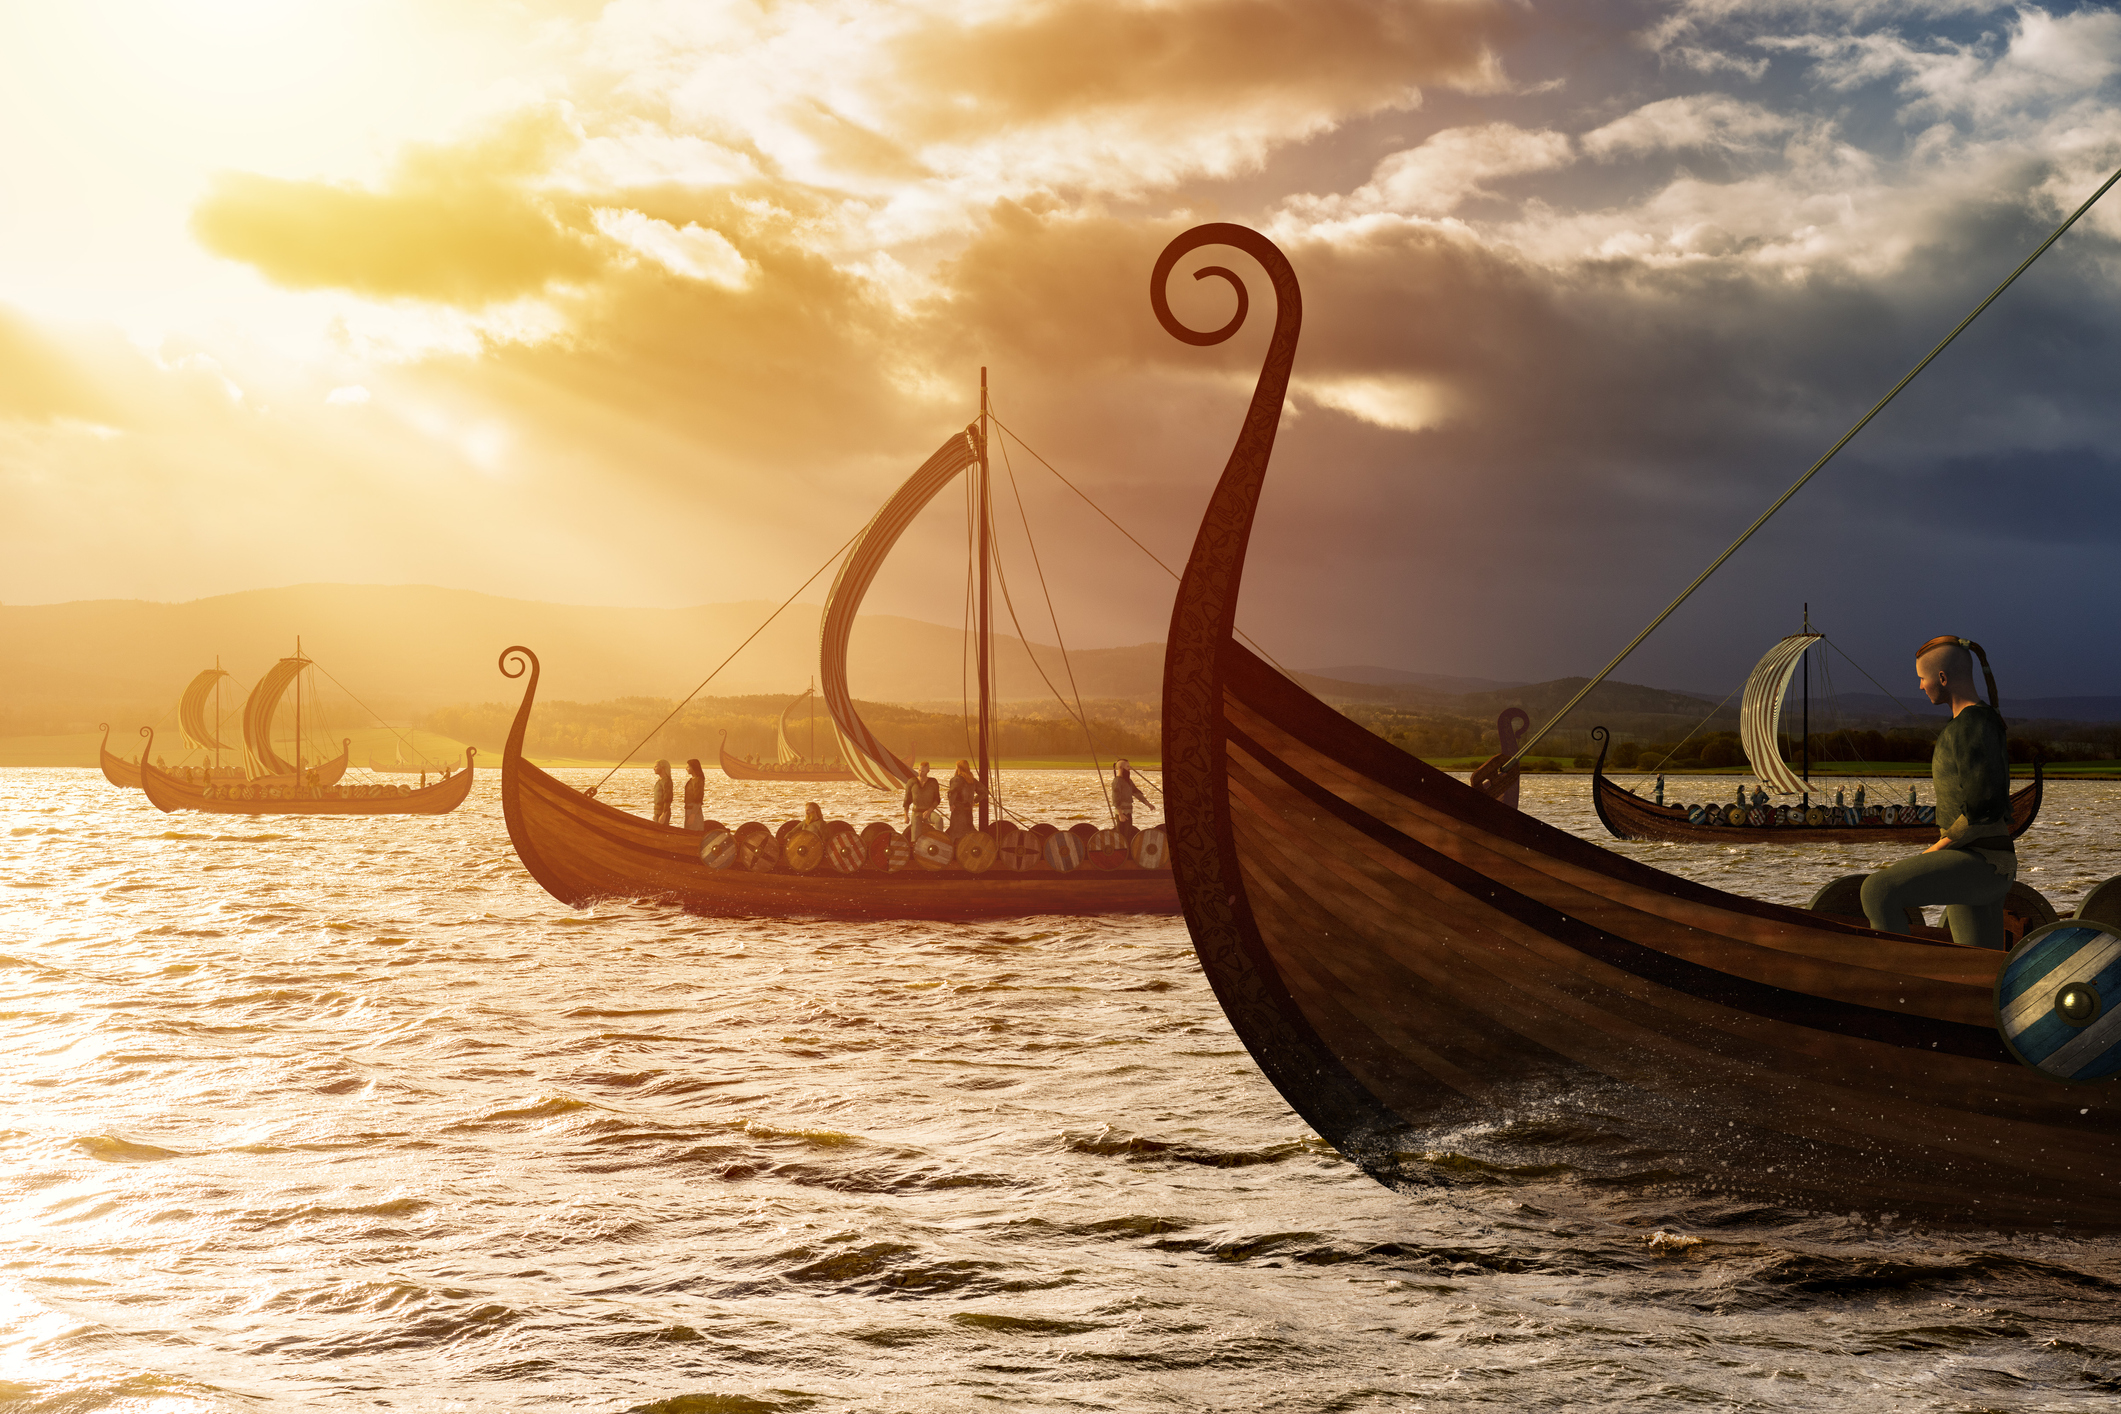 "vikings - ancestry.comDNArealityevolution of our understanding of historythe lie v why""The Wonder"" - Alice's Father's ship when not in Wonderland"